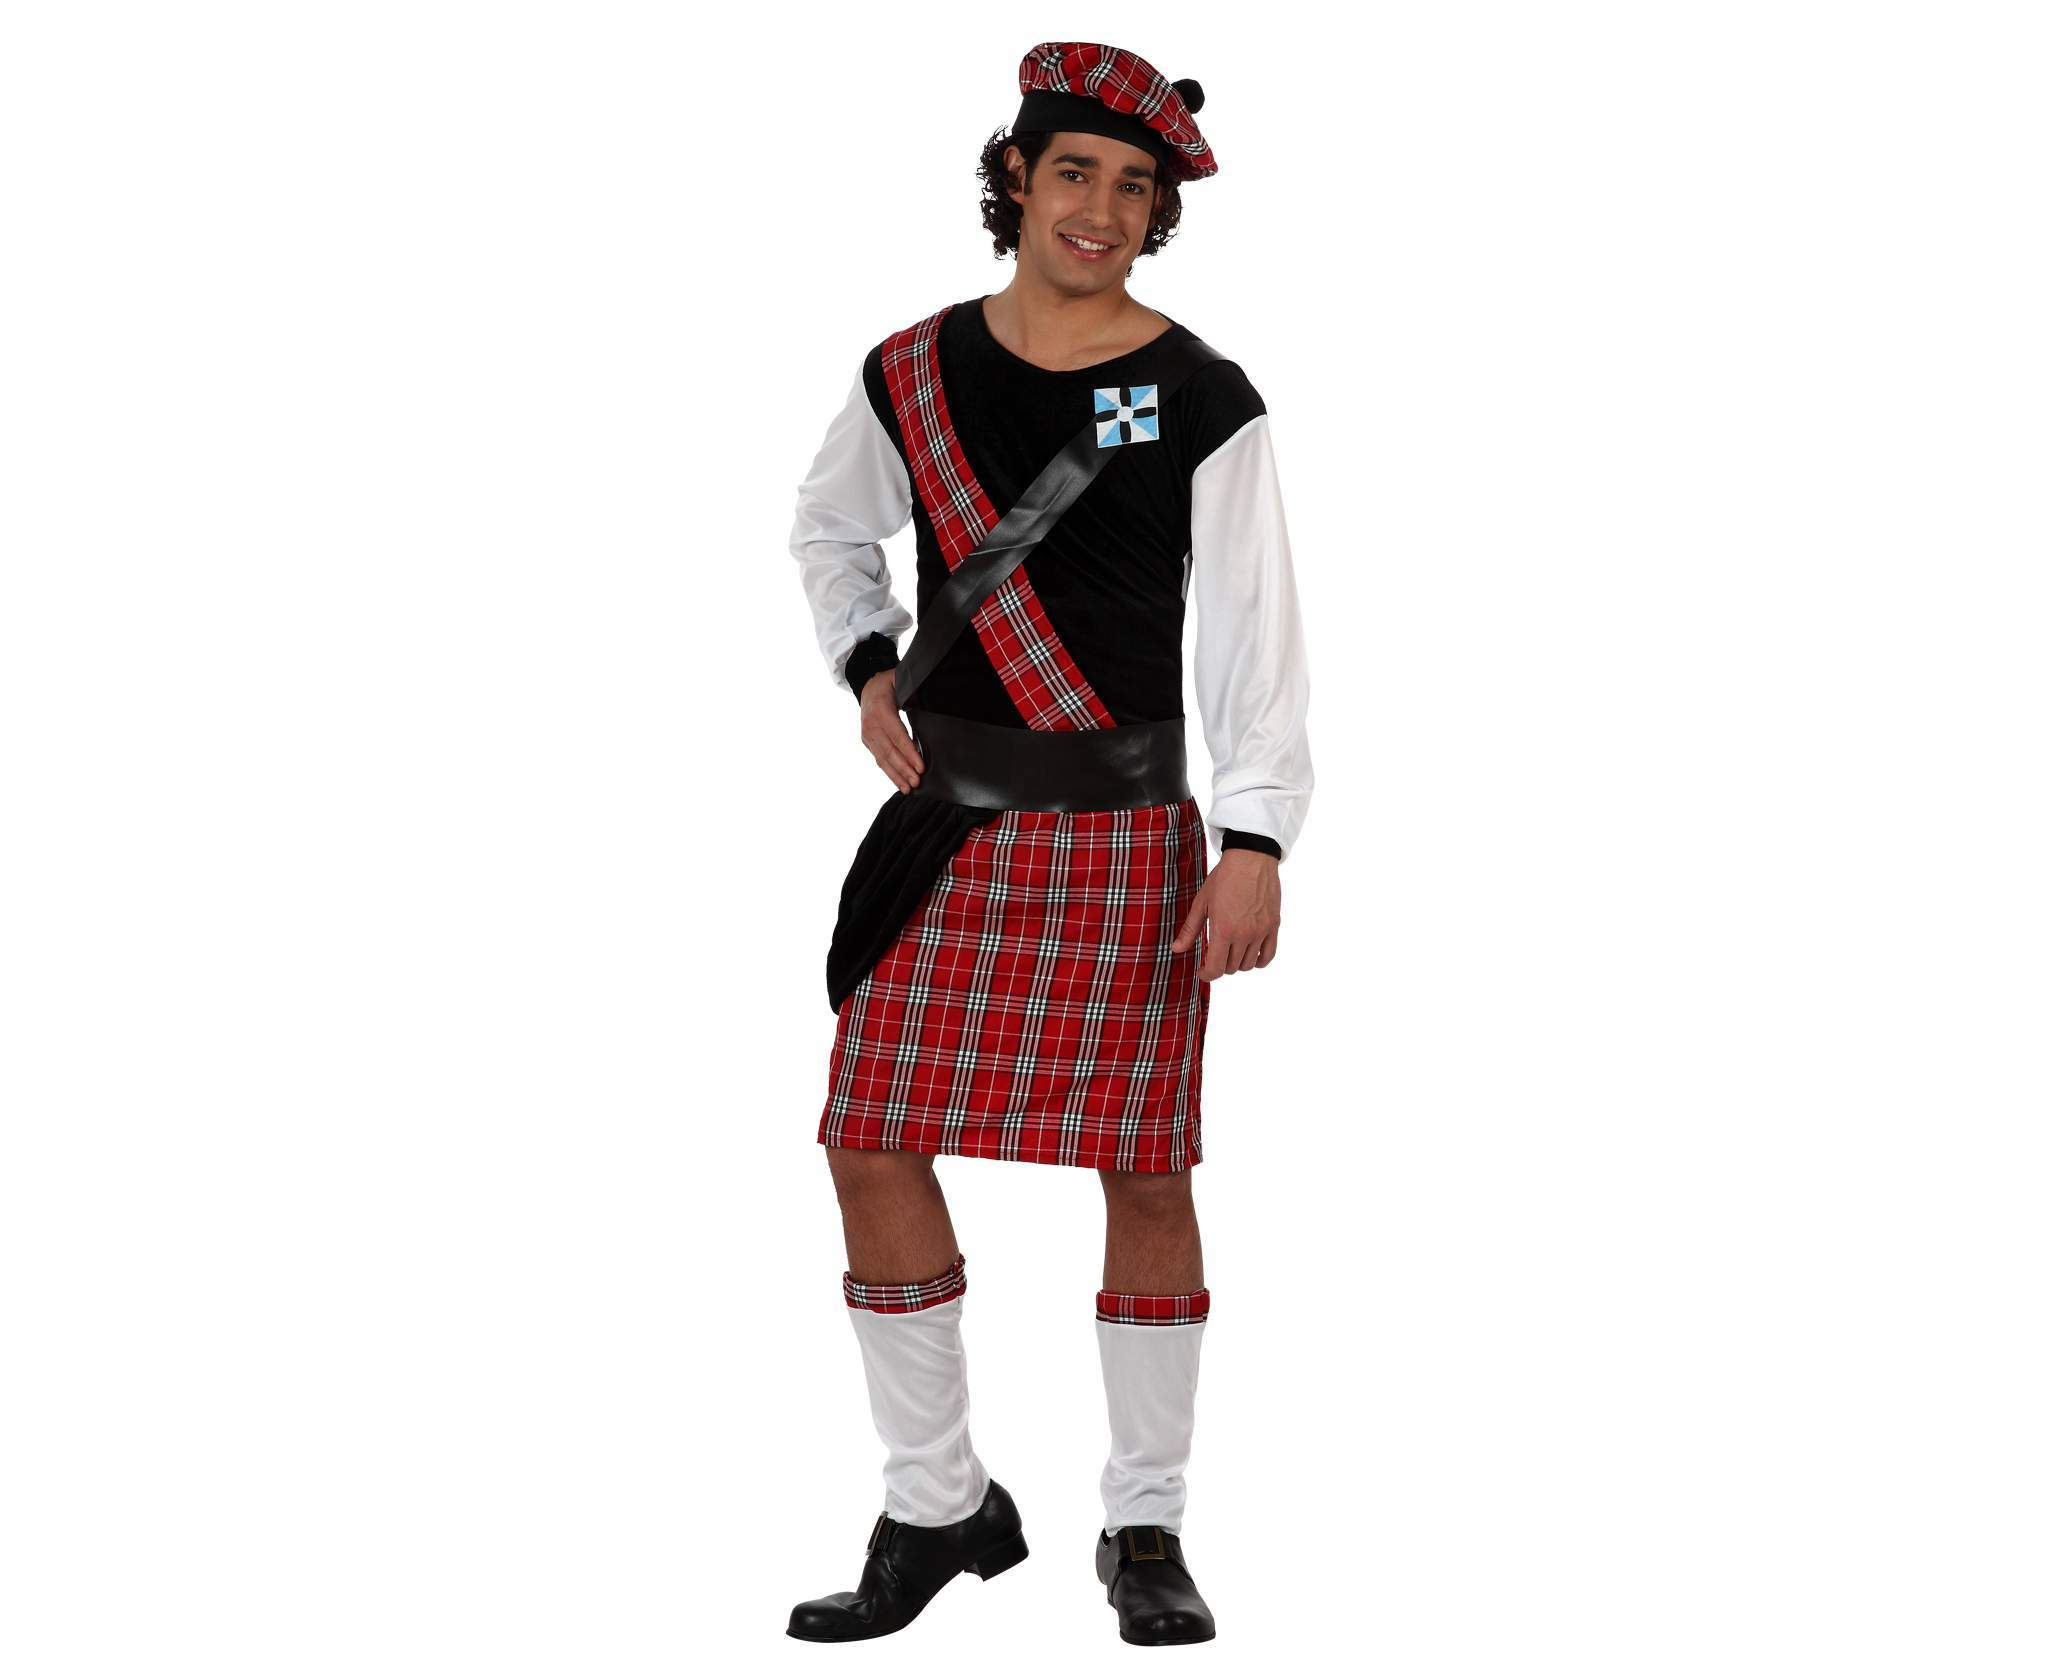 d guisement kilt cossais costume homme cosse. Black Bedroom Furniture Sets. Home Design Ideas